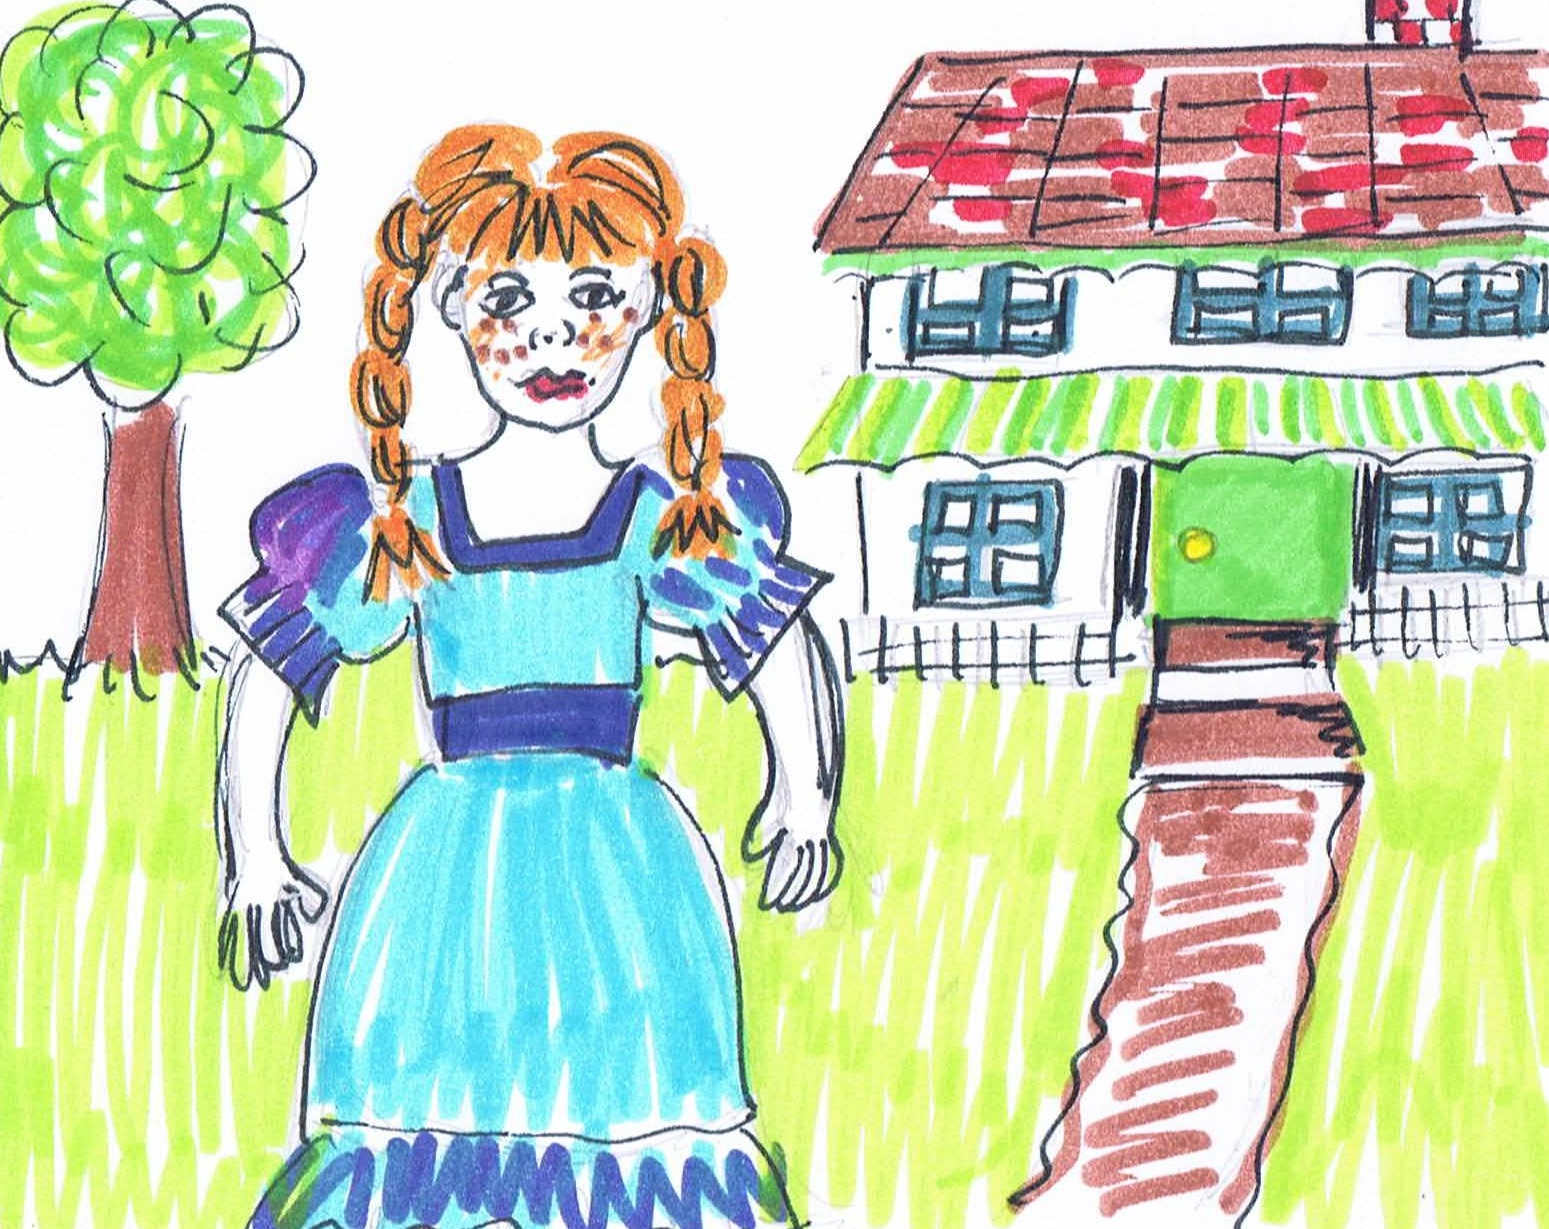 Image: Child's drawing of Anne of Green Gables